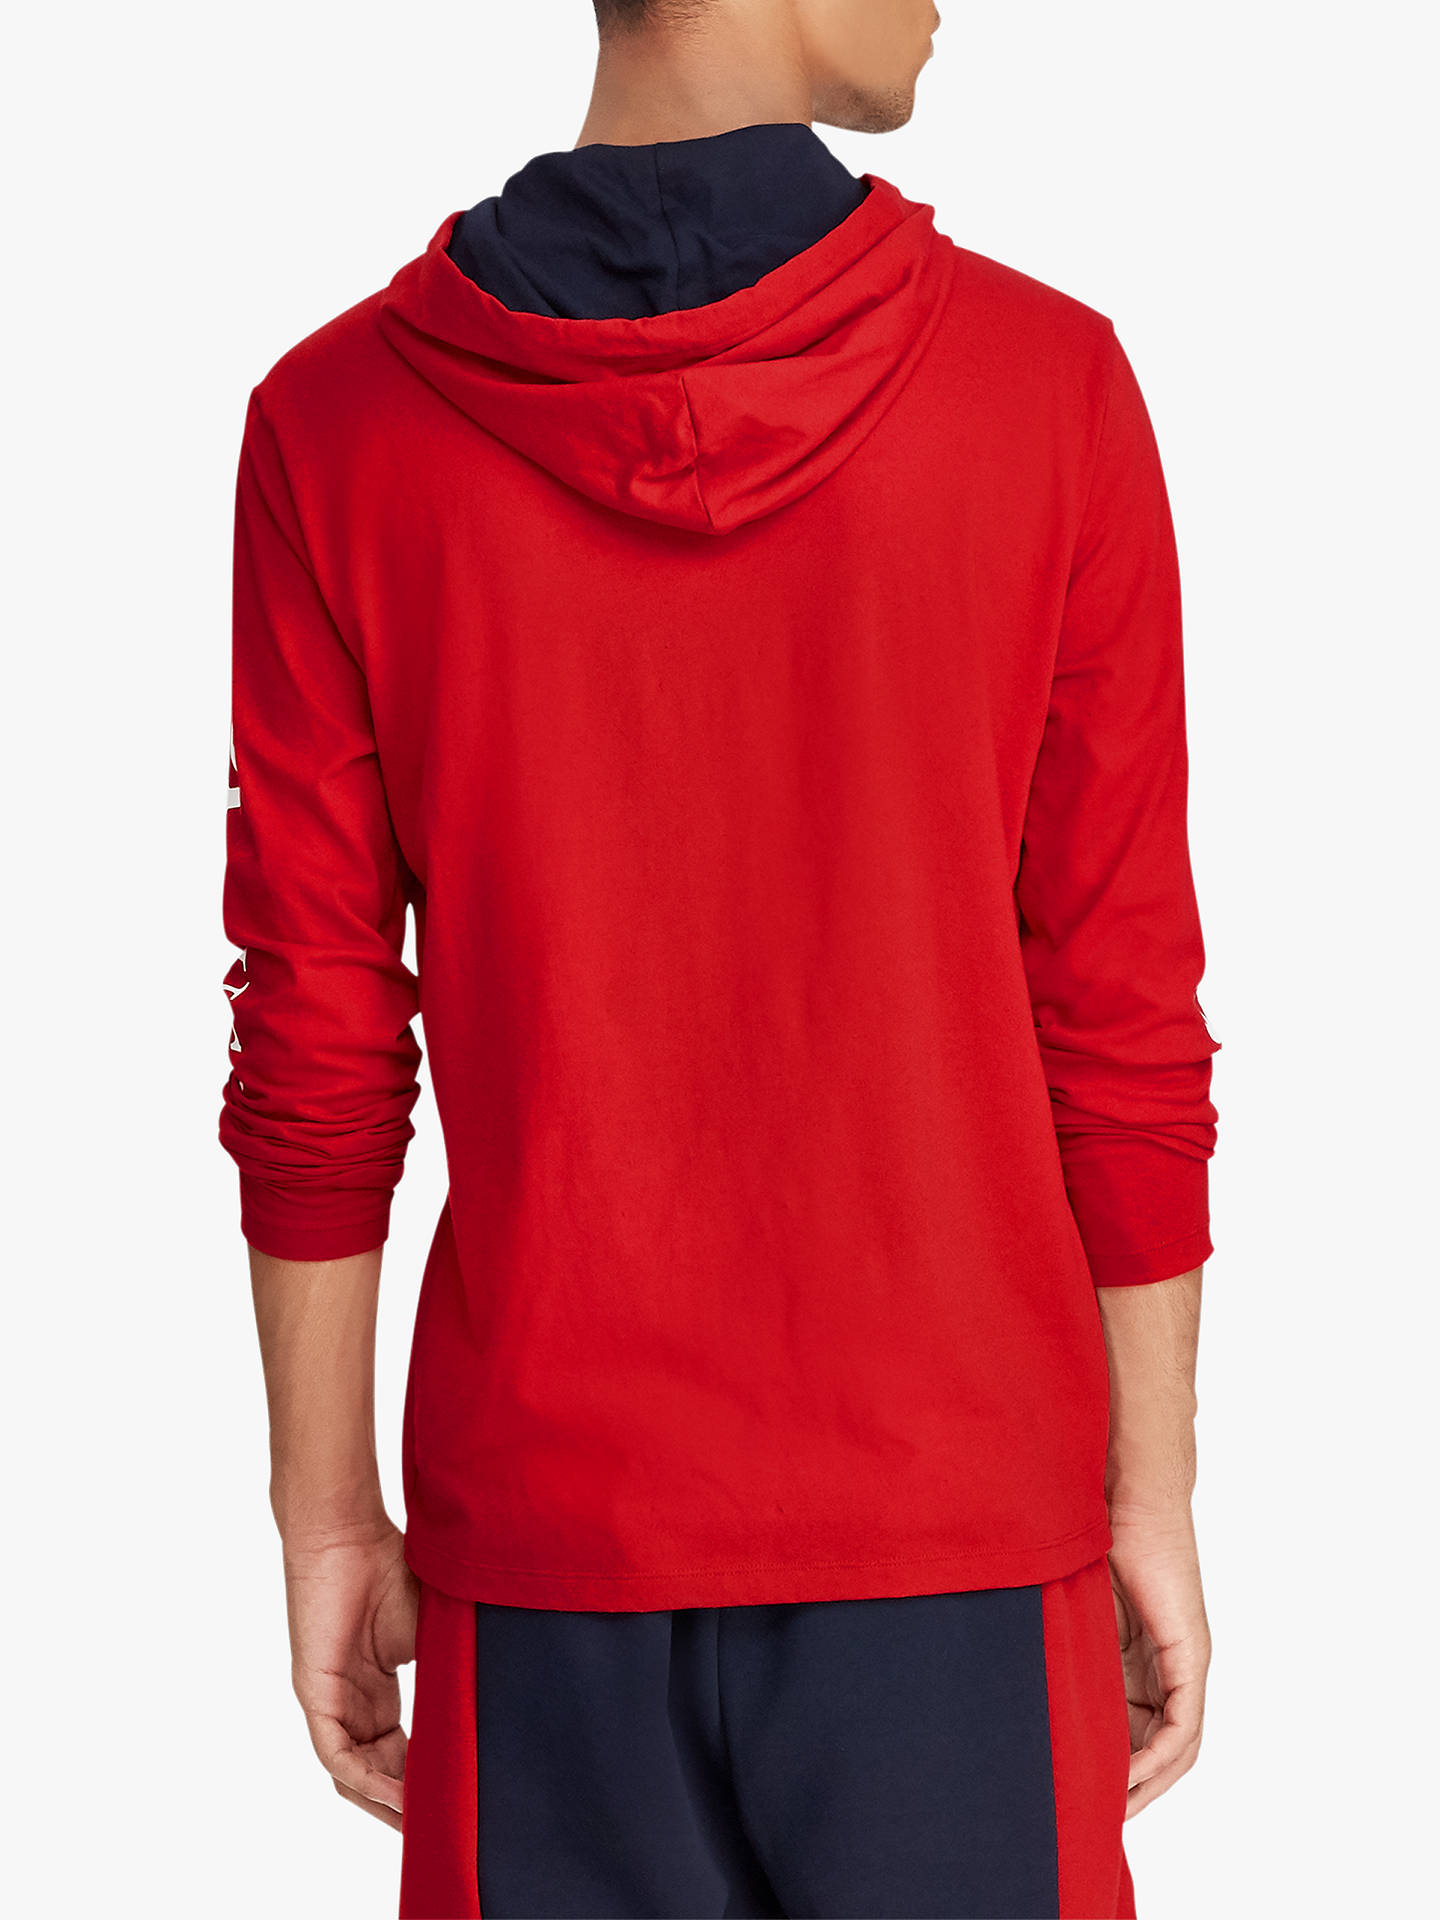 BuyPolo Ralph Lauren Ski Hooded T-Shirt, Red, L Online at johnlewis.com